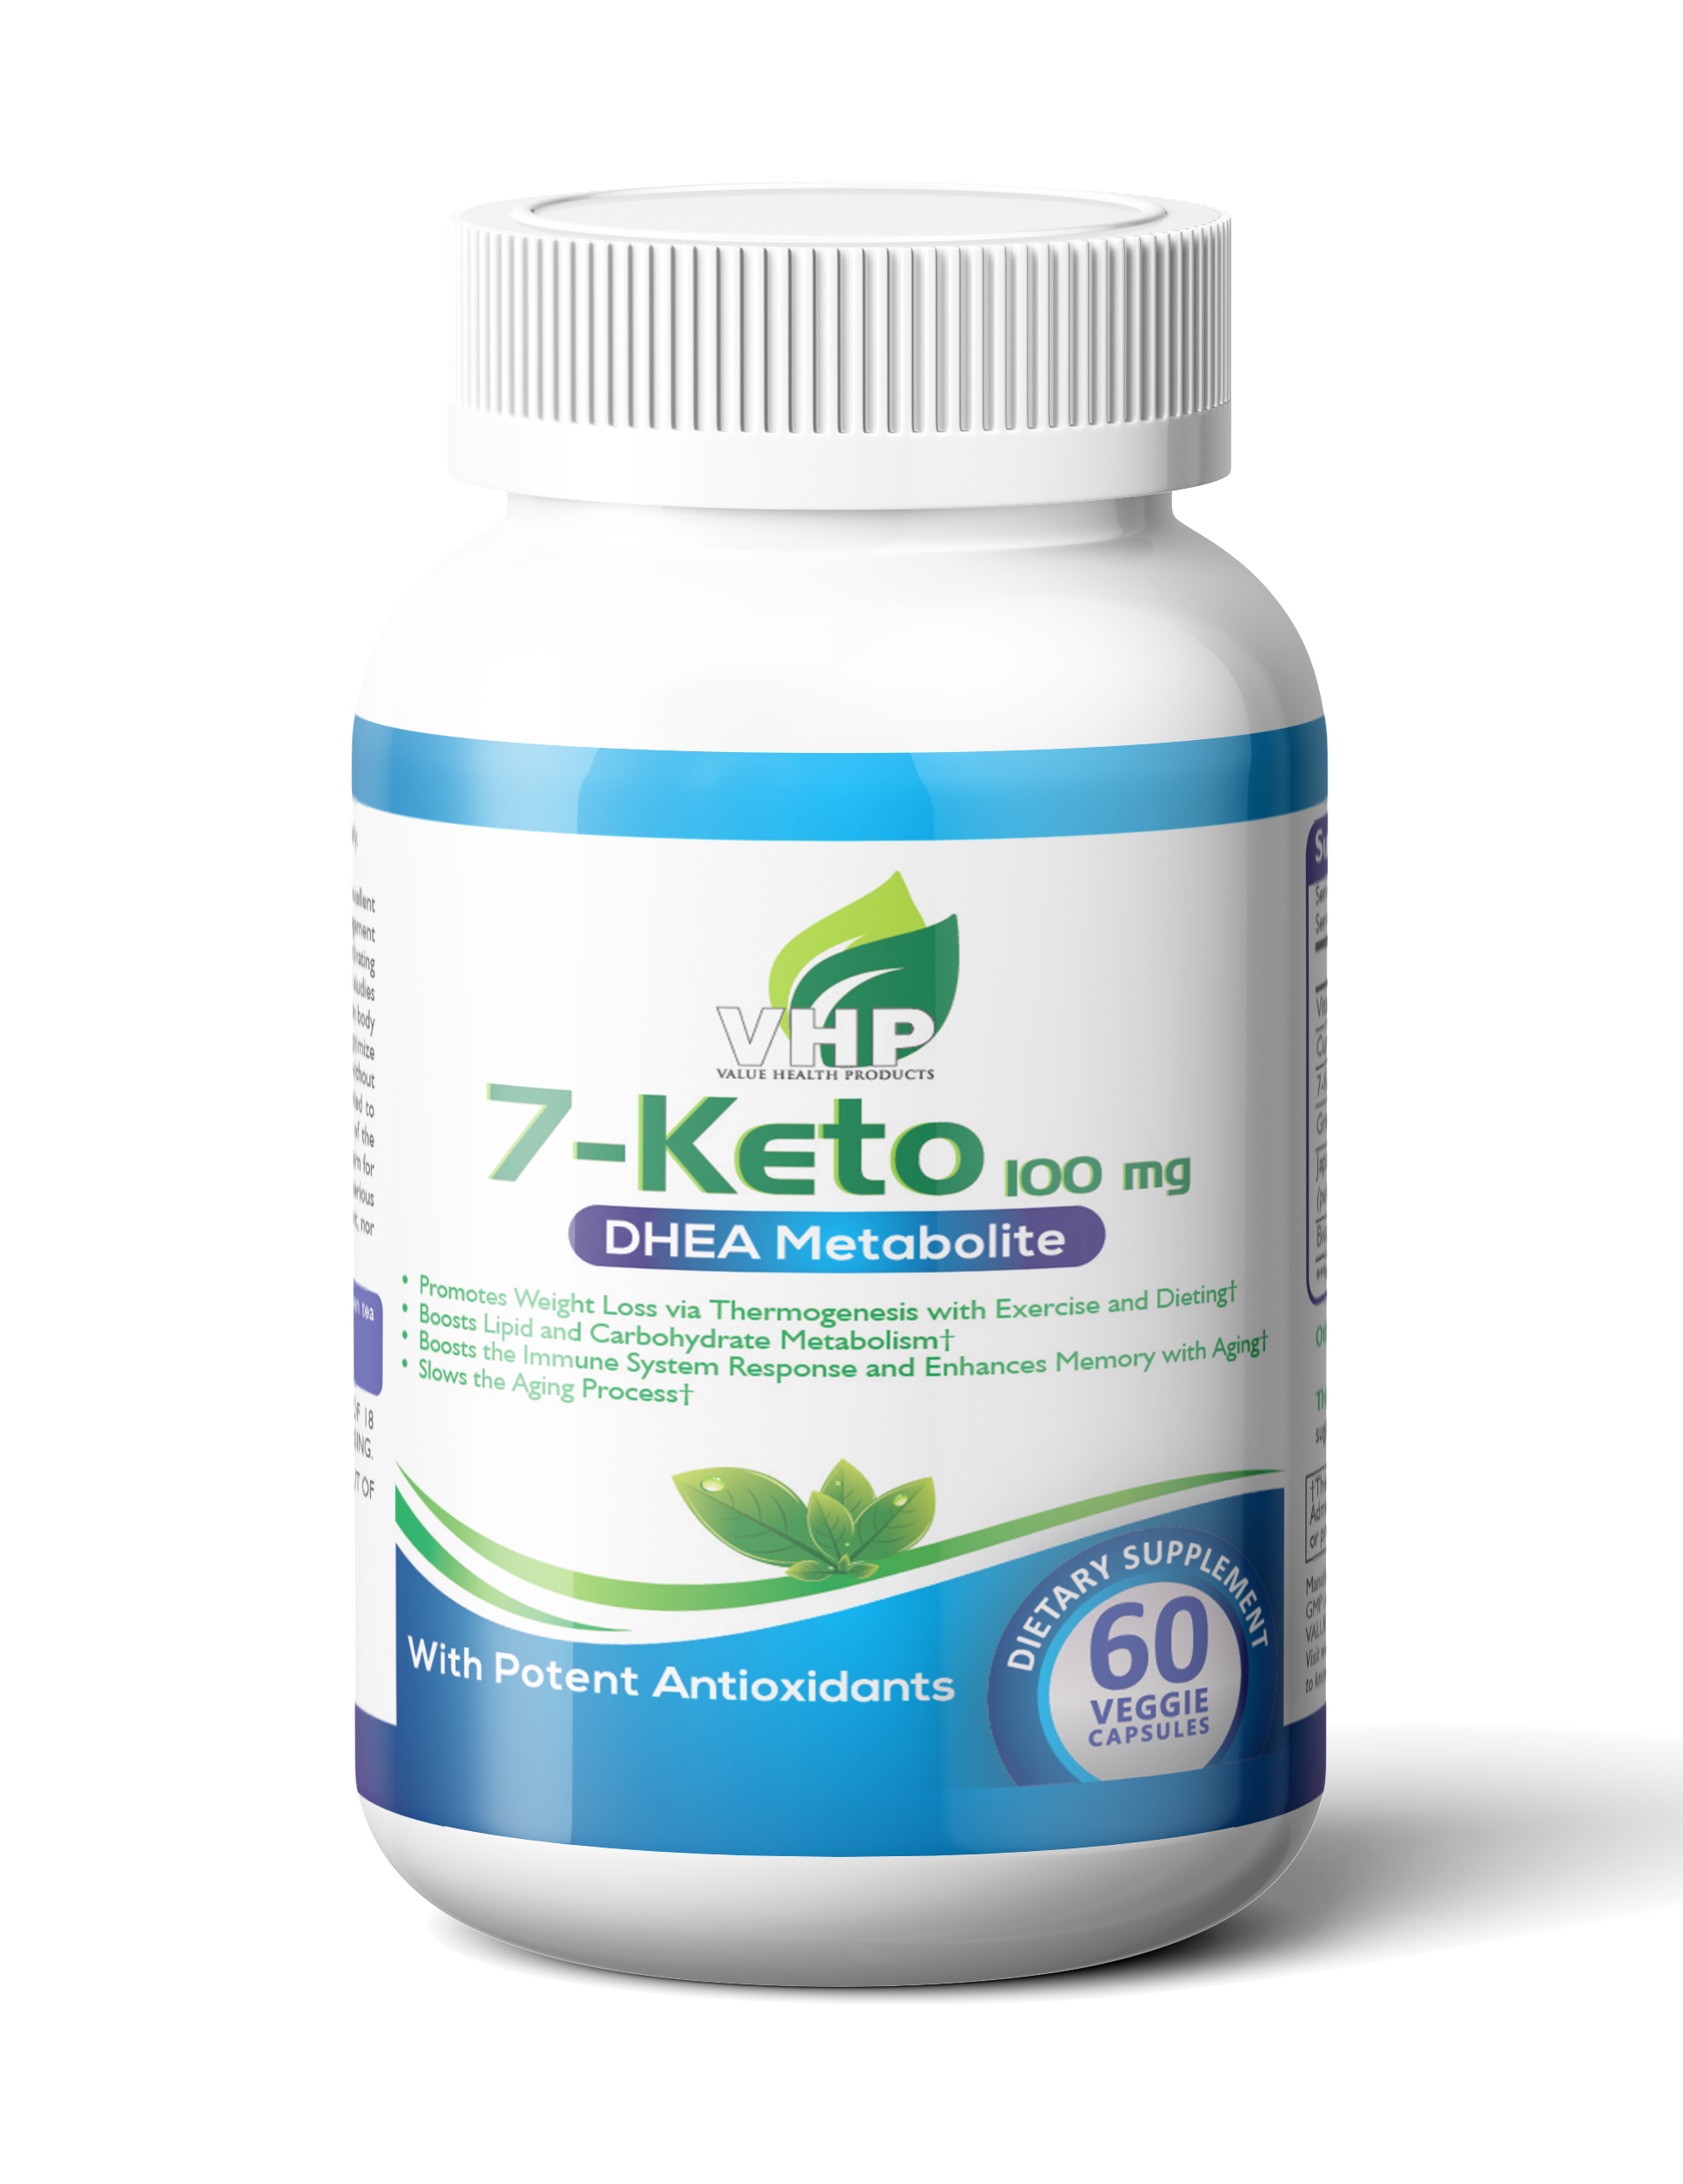 Home - image 7-Keto-DHEA-with-Antioxidants on https://www.valuehealthproducts.com